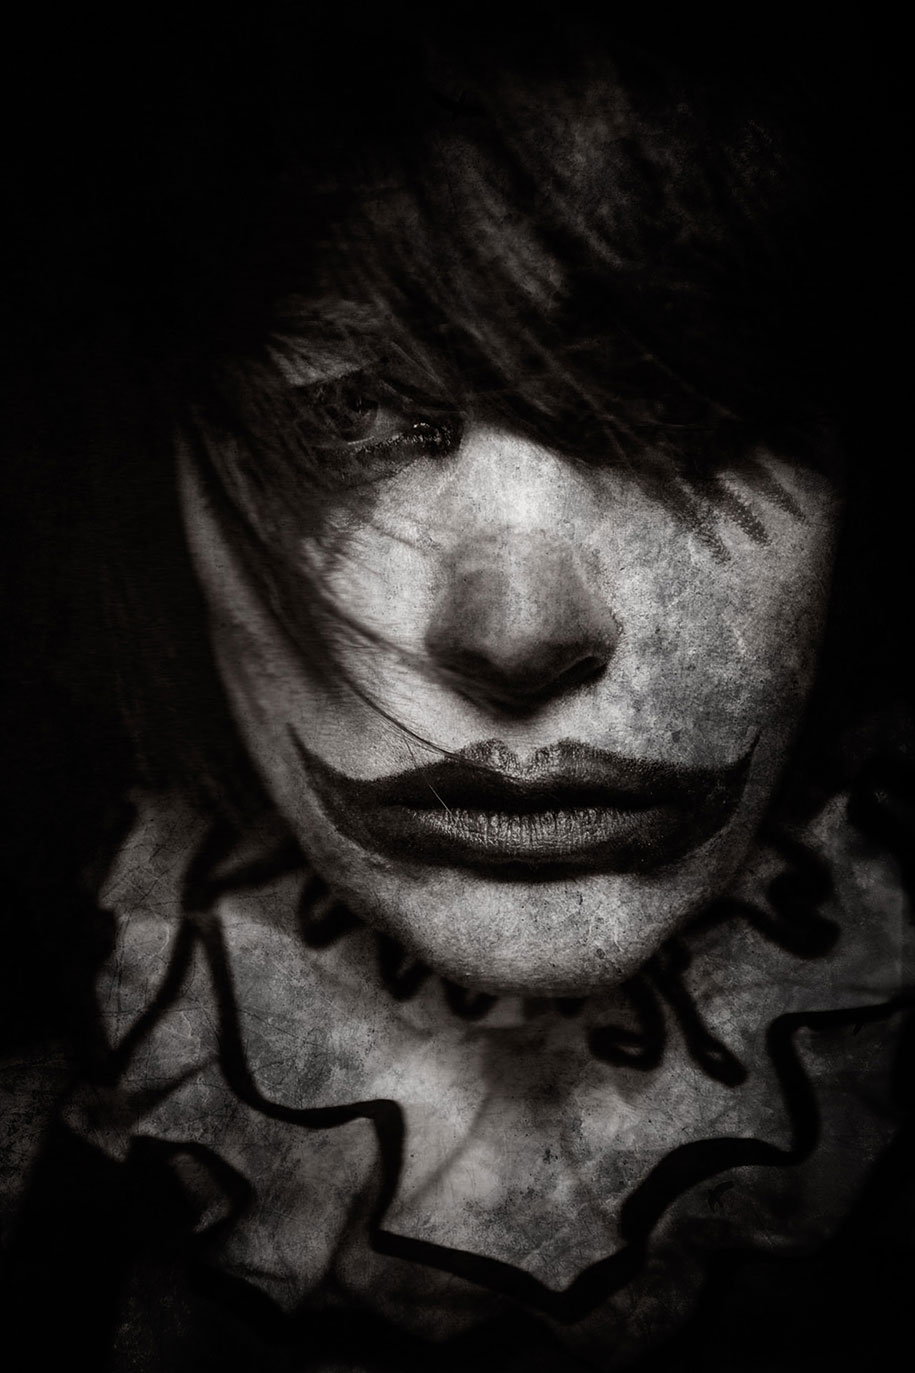 macabre-scary-clown-portraits-clownville-eolo-perfido-10